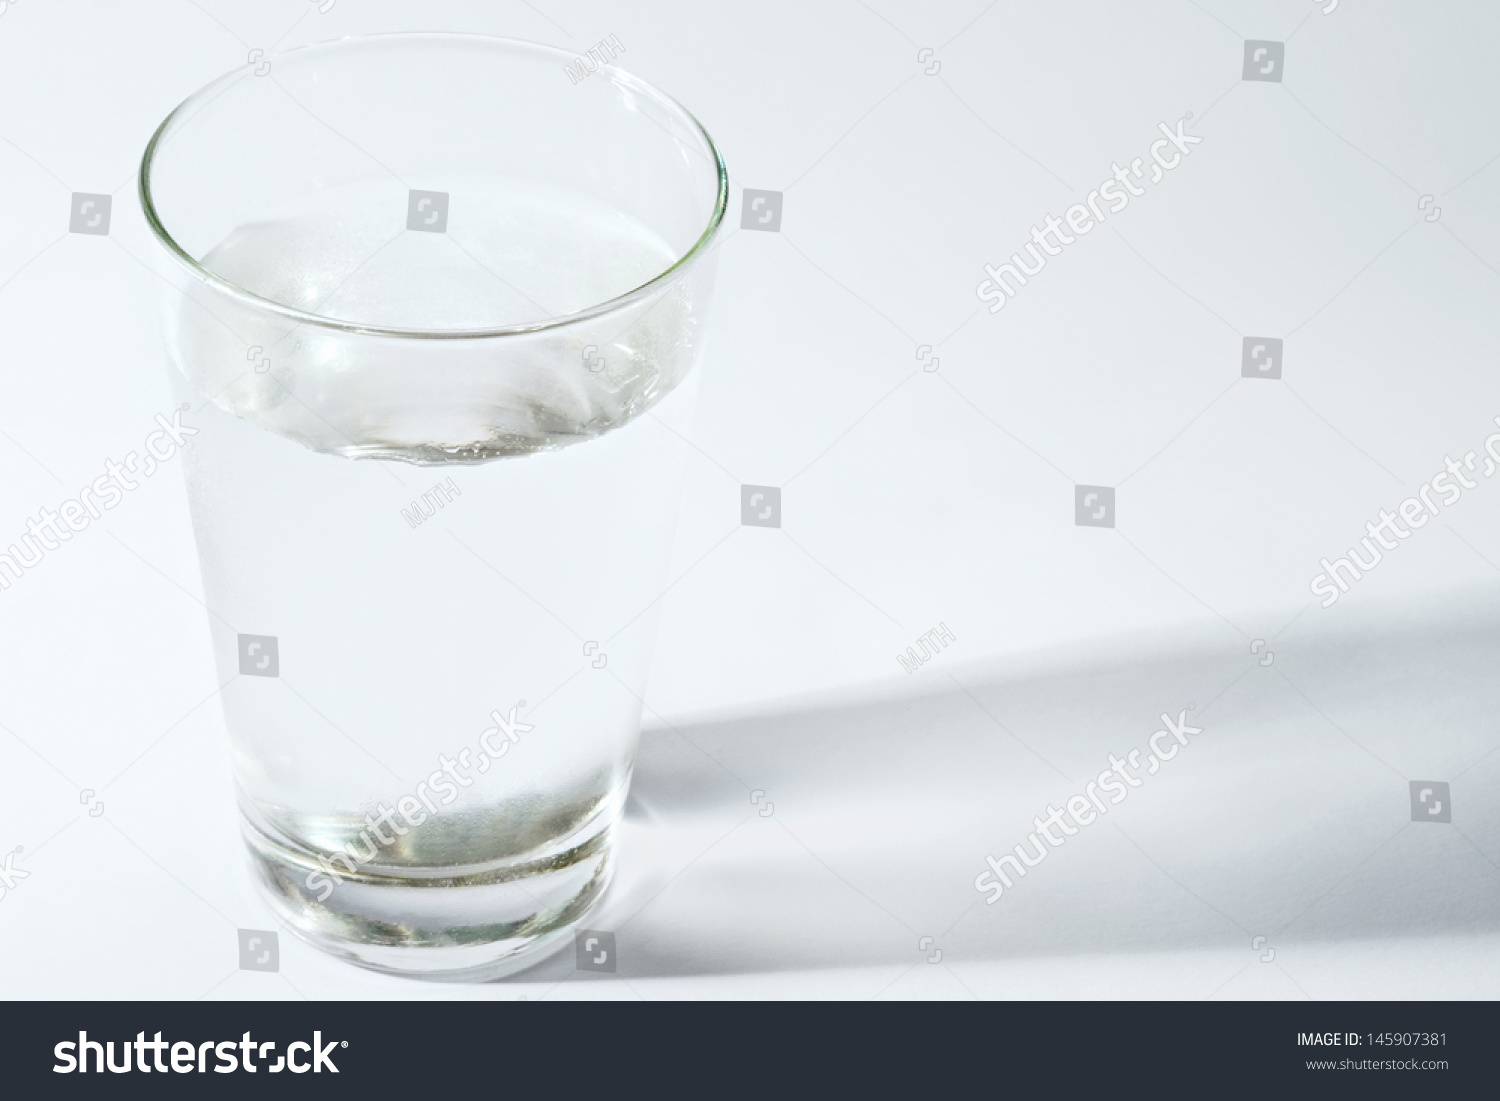 Full glass of clear healthy water standing on a white table with side shadows and space next to it, object. #145907381